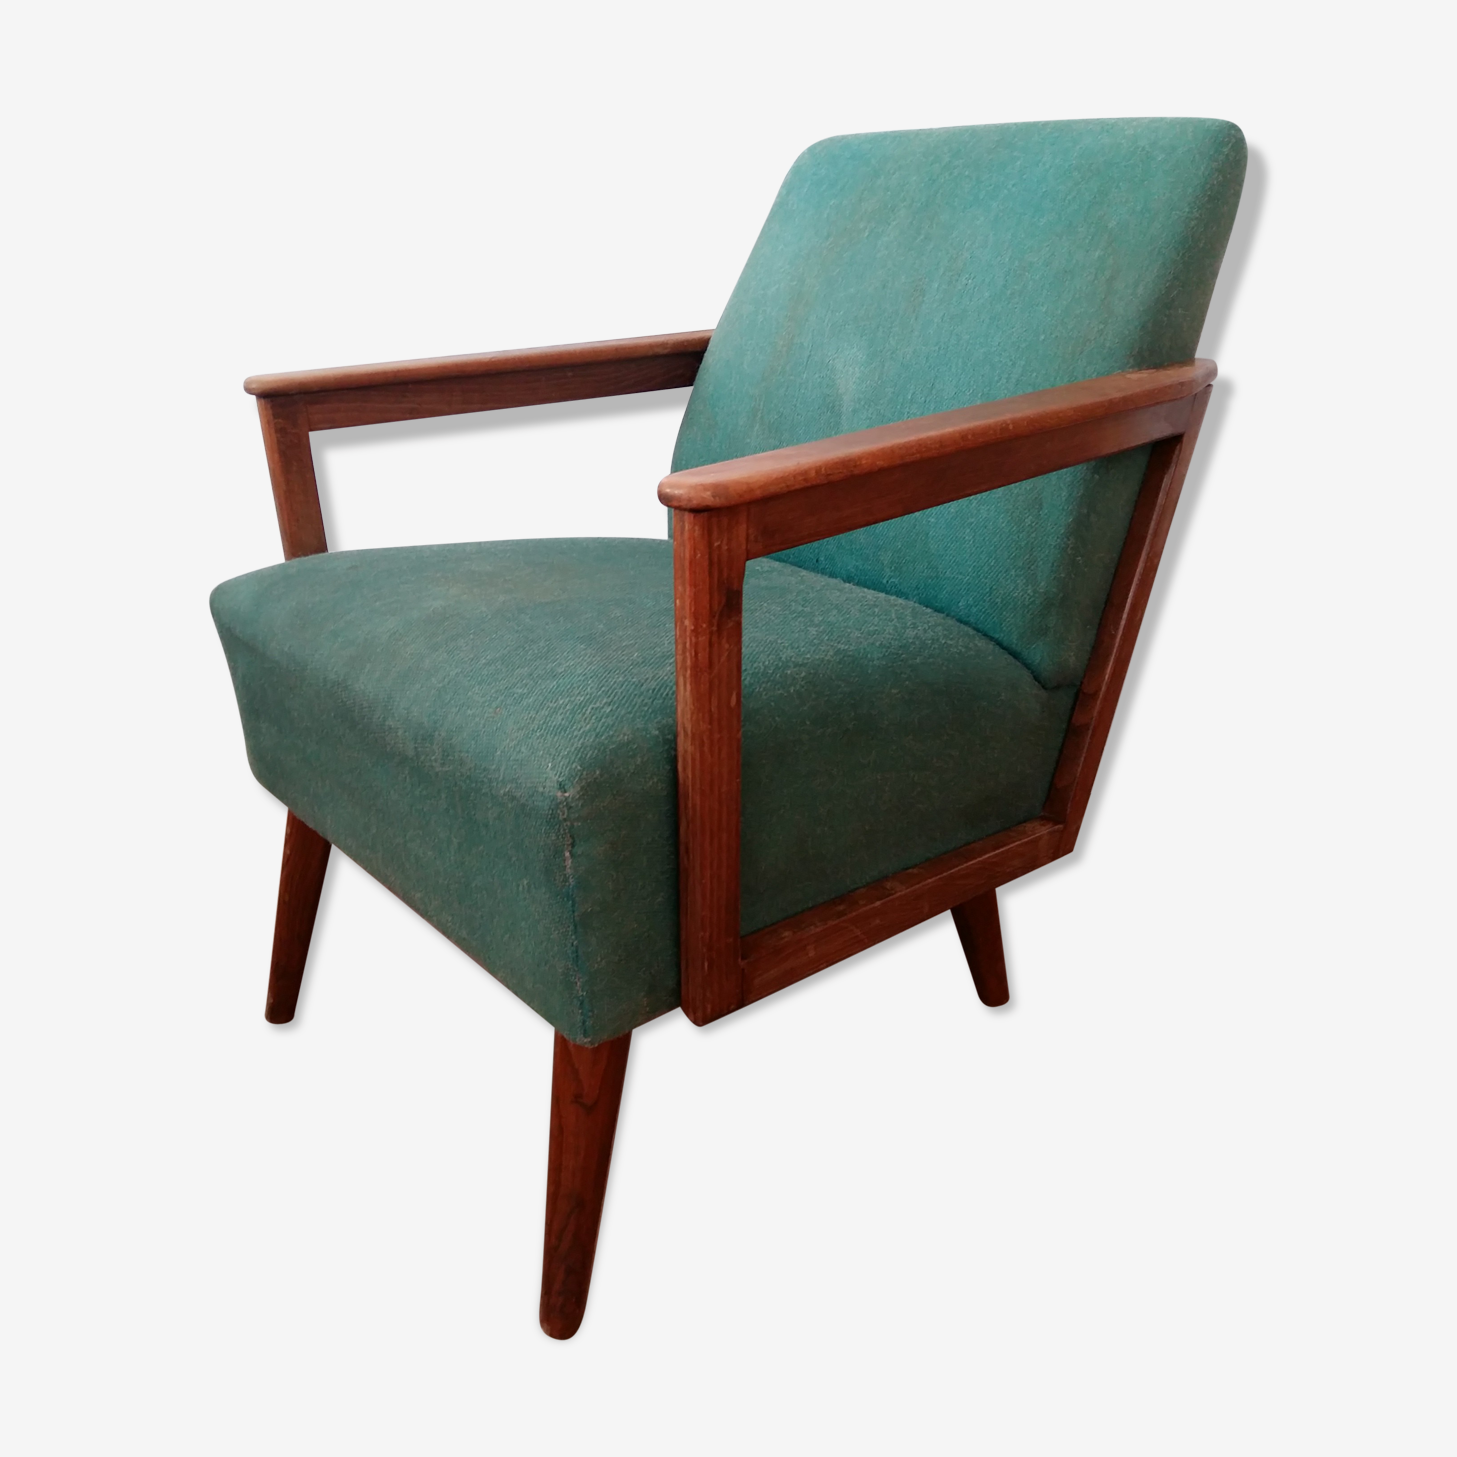 An unique armchair from 1962, produced in the GDR